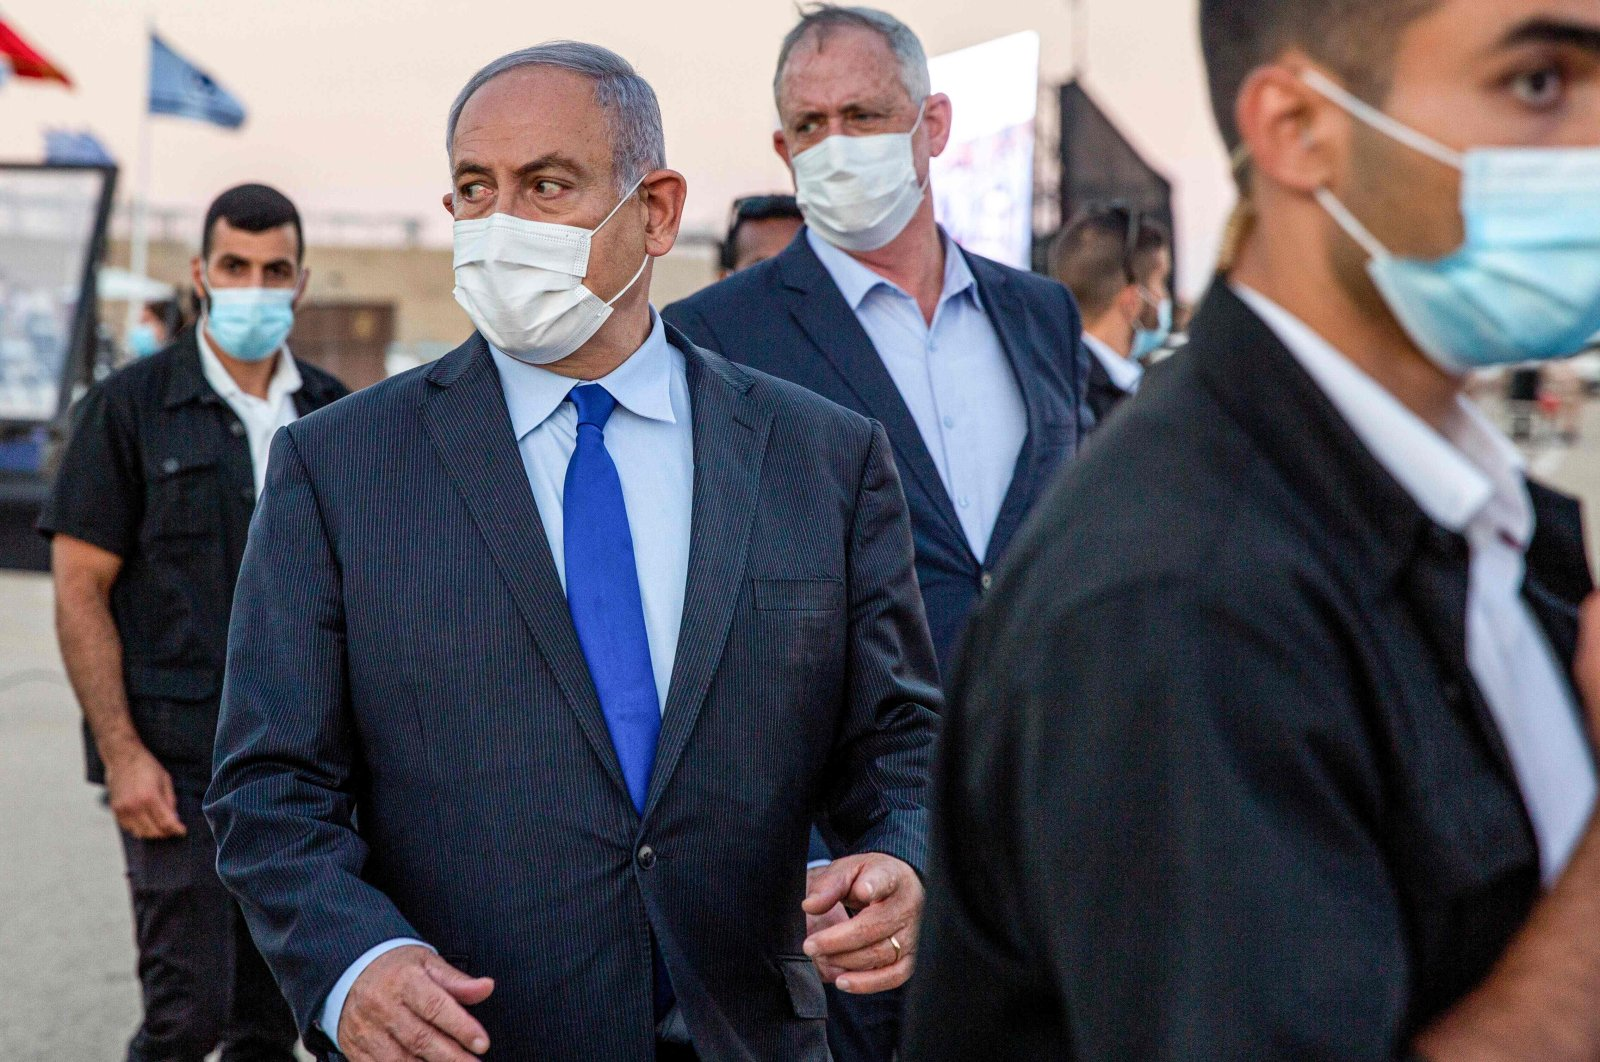 Israeli Prime Minister Benjamin Netanyahu (C-L) and his coalition partner Defence Minister Benny Gantz (C-R) arrive at a graduation ceremony for new pilots in Hatzerim air force base near the southern Israeli city of Beersheba, on June 25, 2020. (AFP Photo)